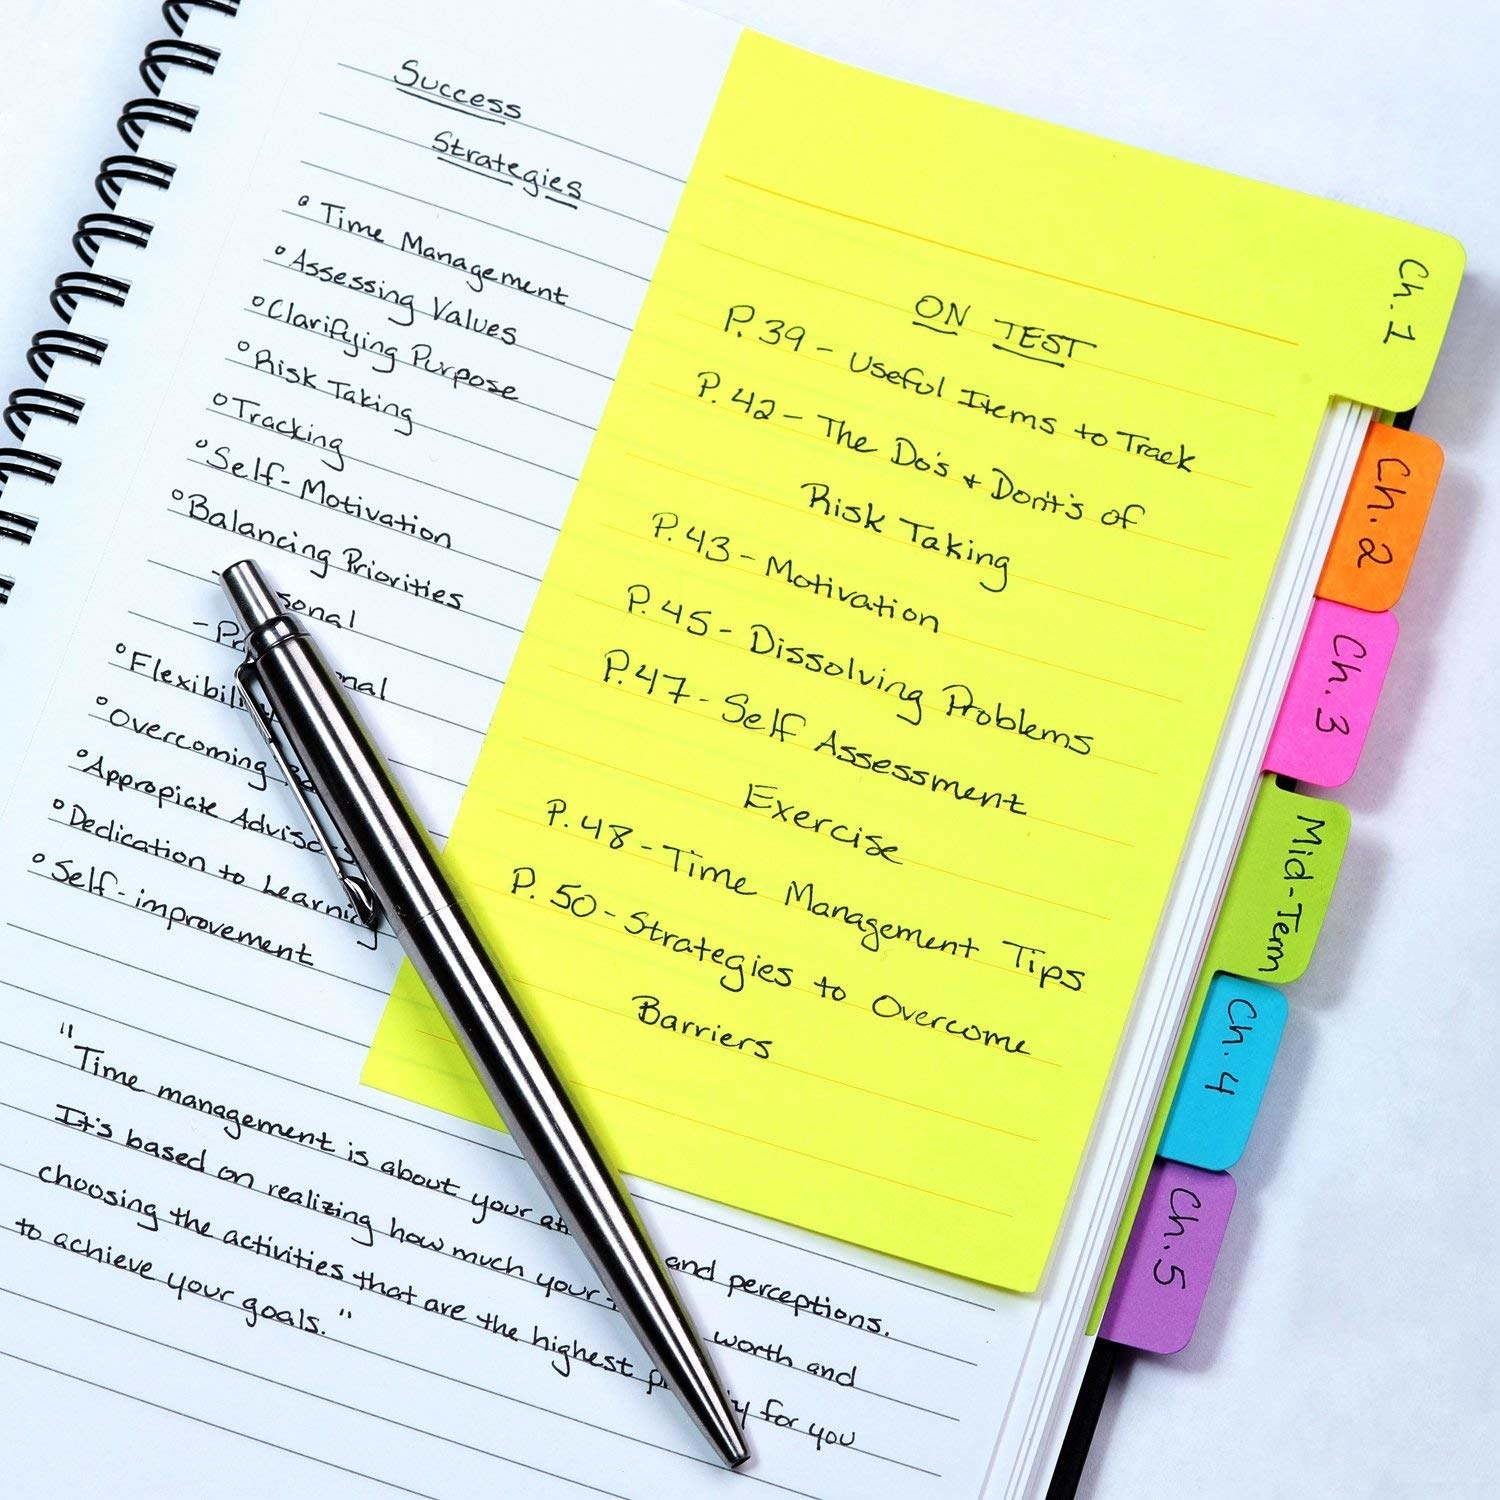 Varying colored sticky notes with divider tabs placed throughout a notebook